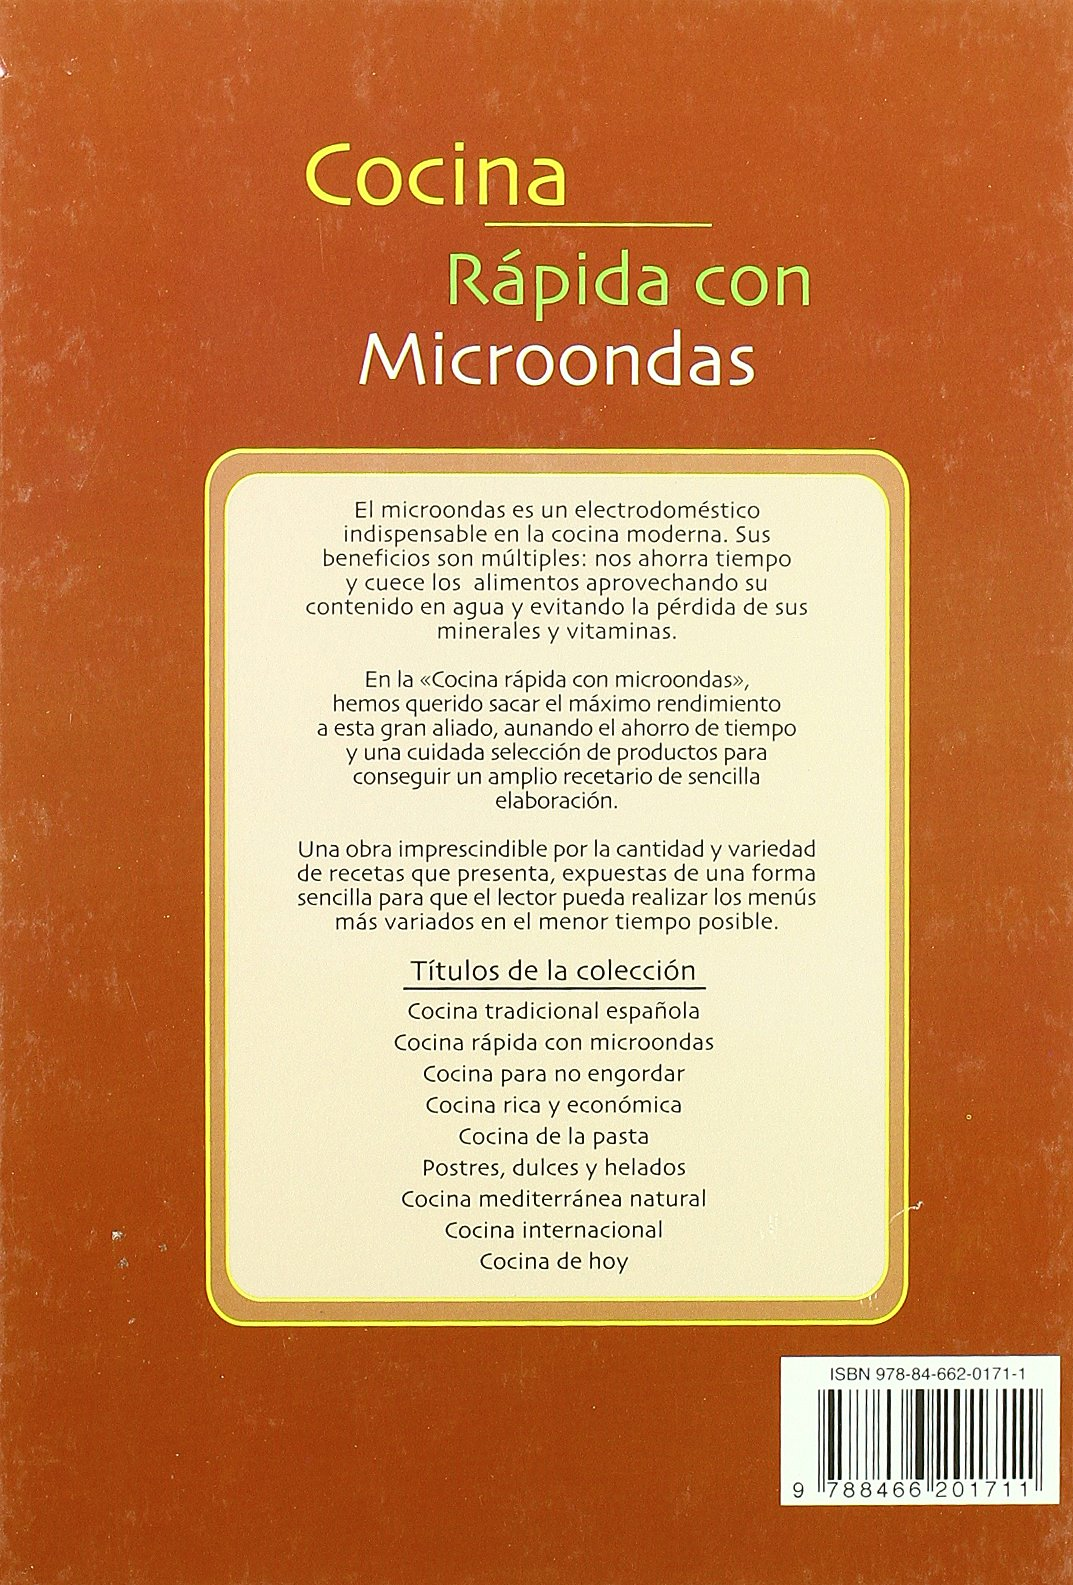 Cocina rapida con microondas / Quick Kitchen With Microwave (Spanish Edition): Gloria Sanjuan: 9788466201711: Amazon.com: Books